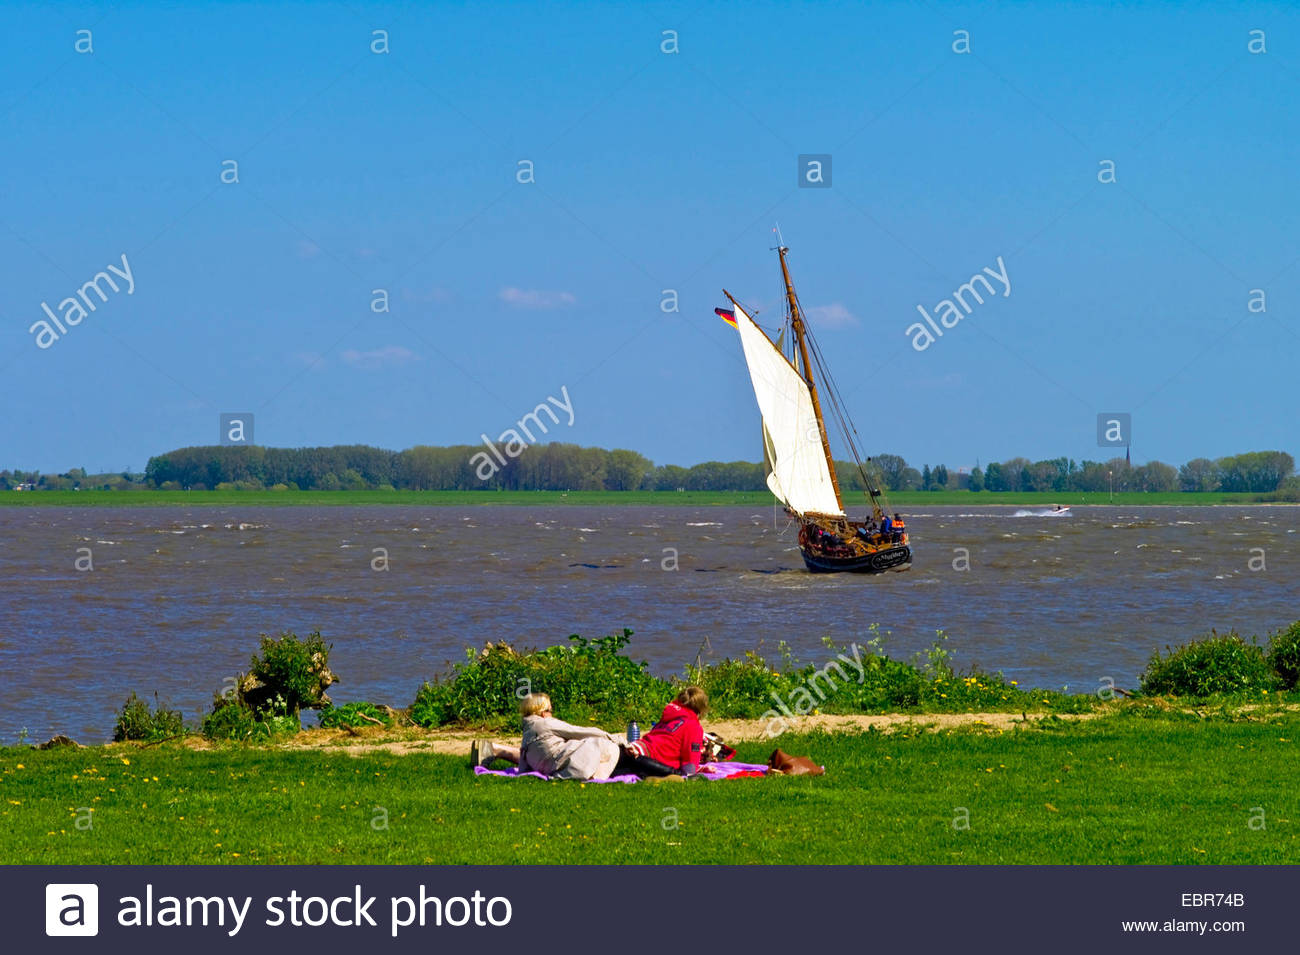 two persons resting at the riverside of the Elbe watching the traditionel ship mytilus, Germany, Lower Saxony - Stock Image